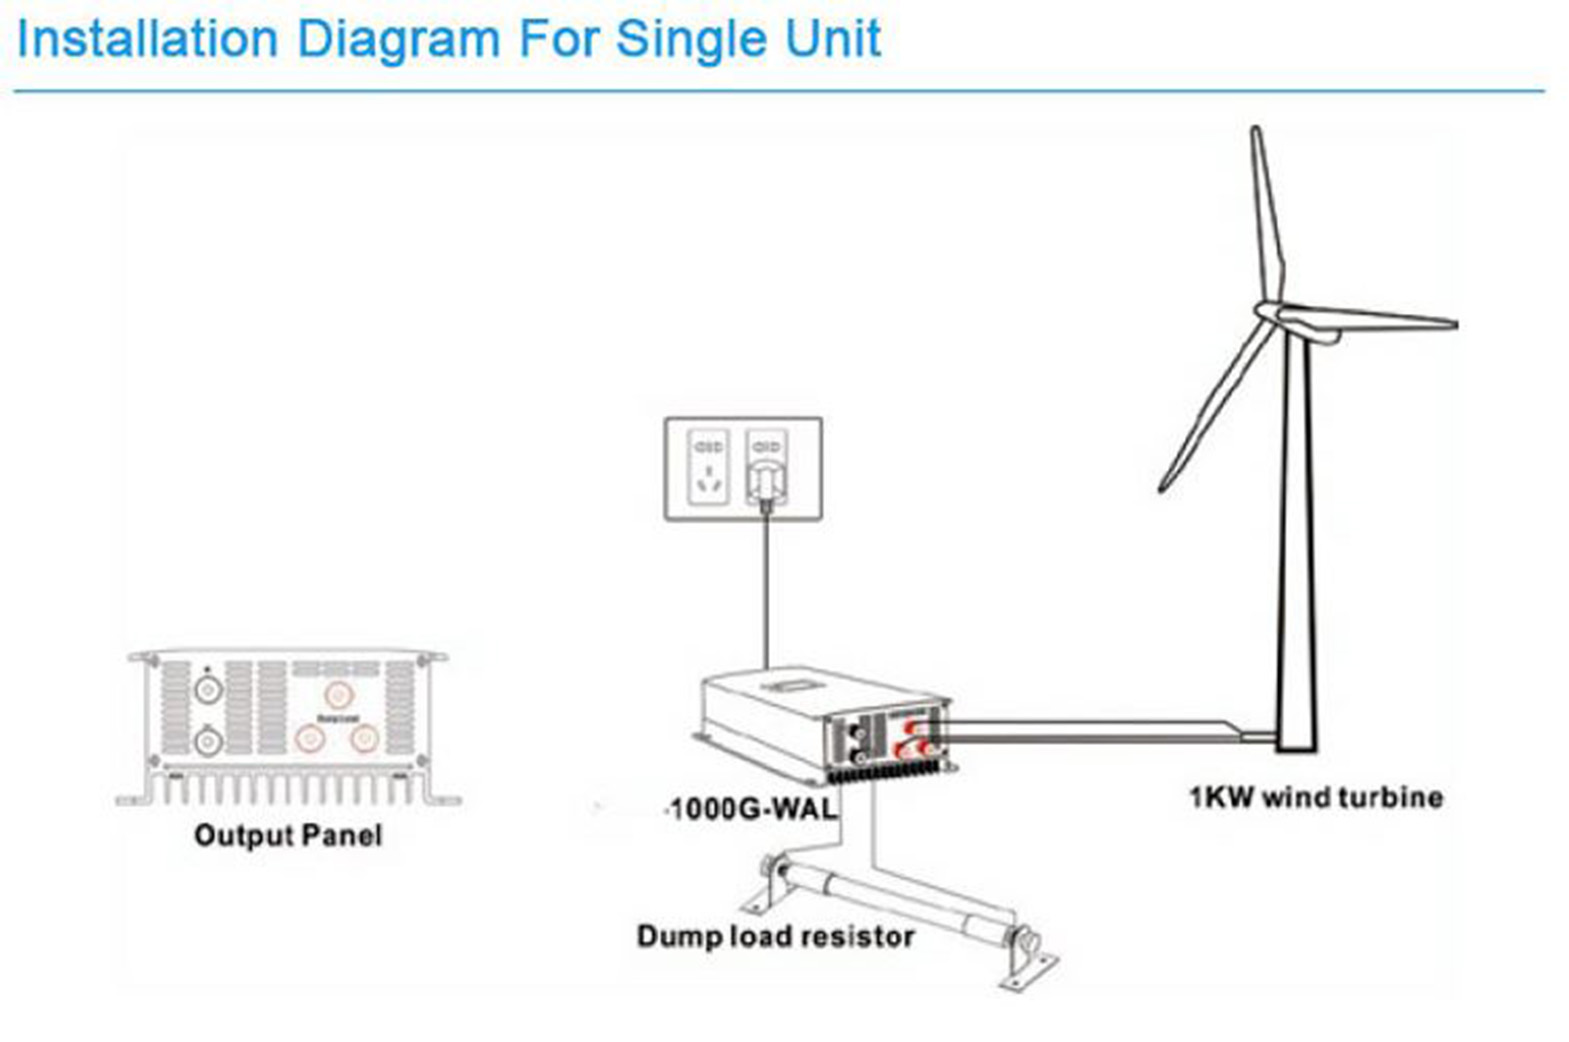 Grid Tie Inverter Watt With Dump Load For 3 Phase Ac